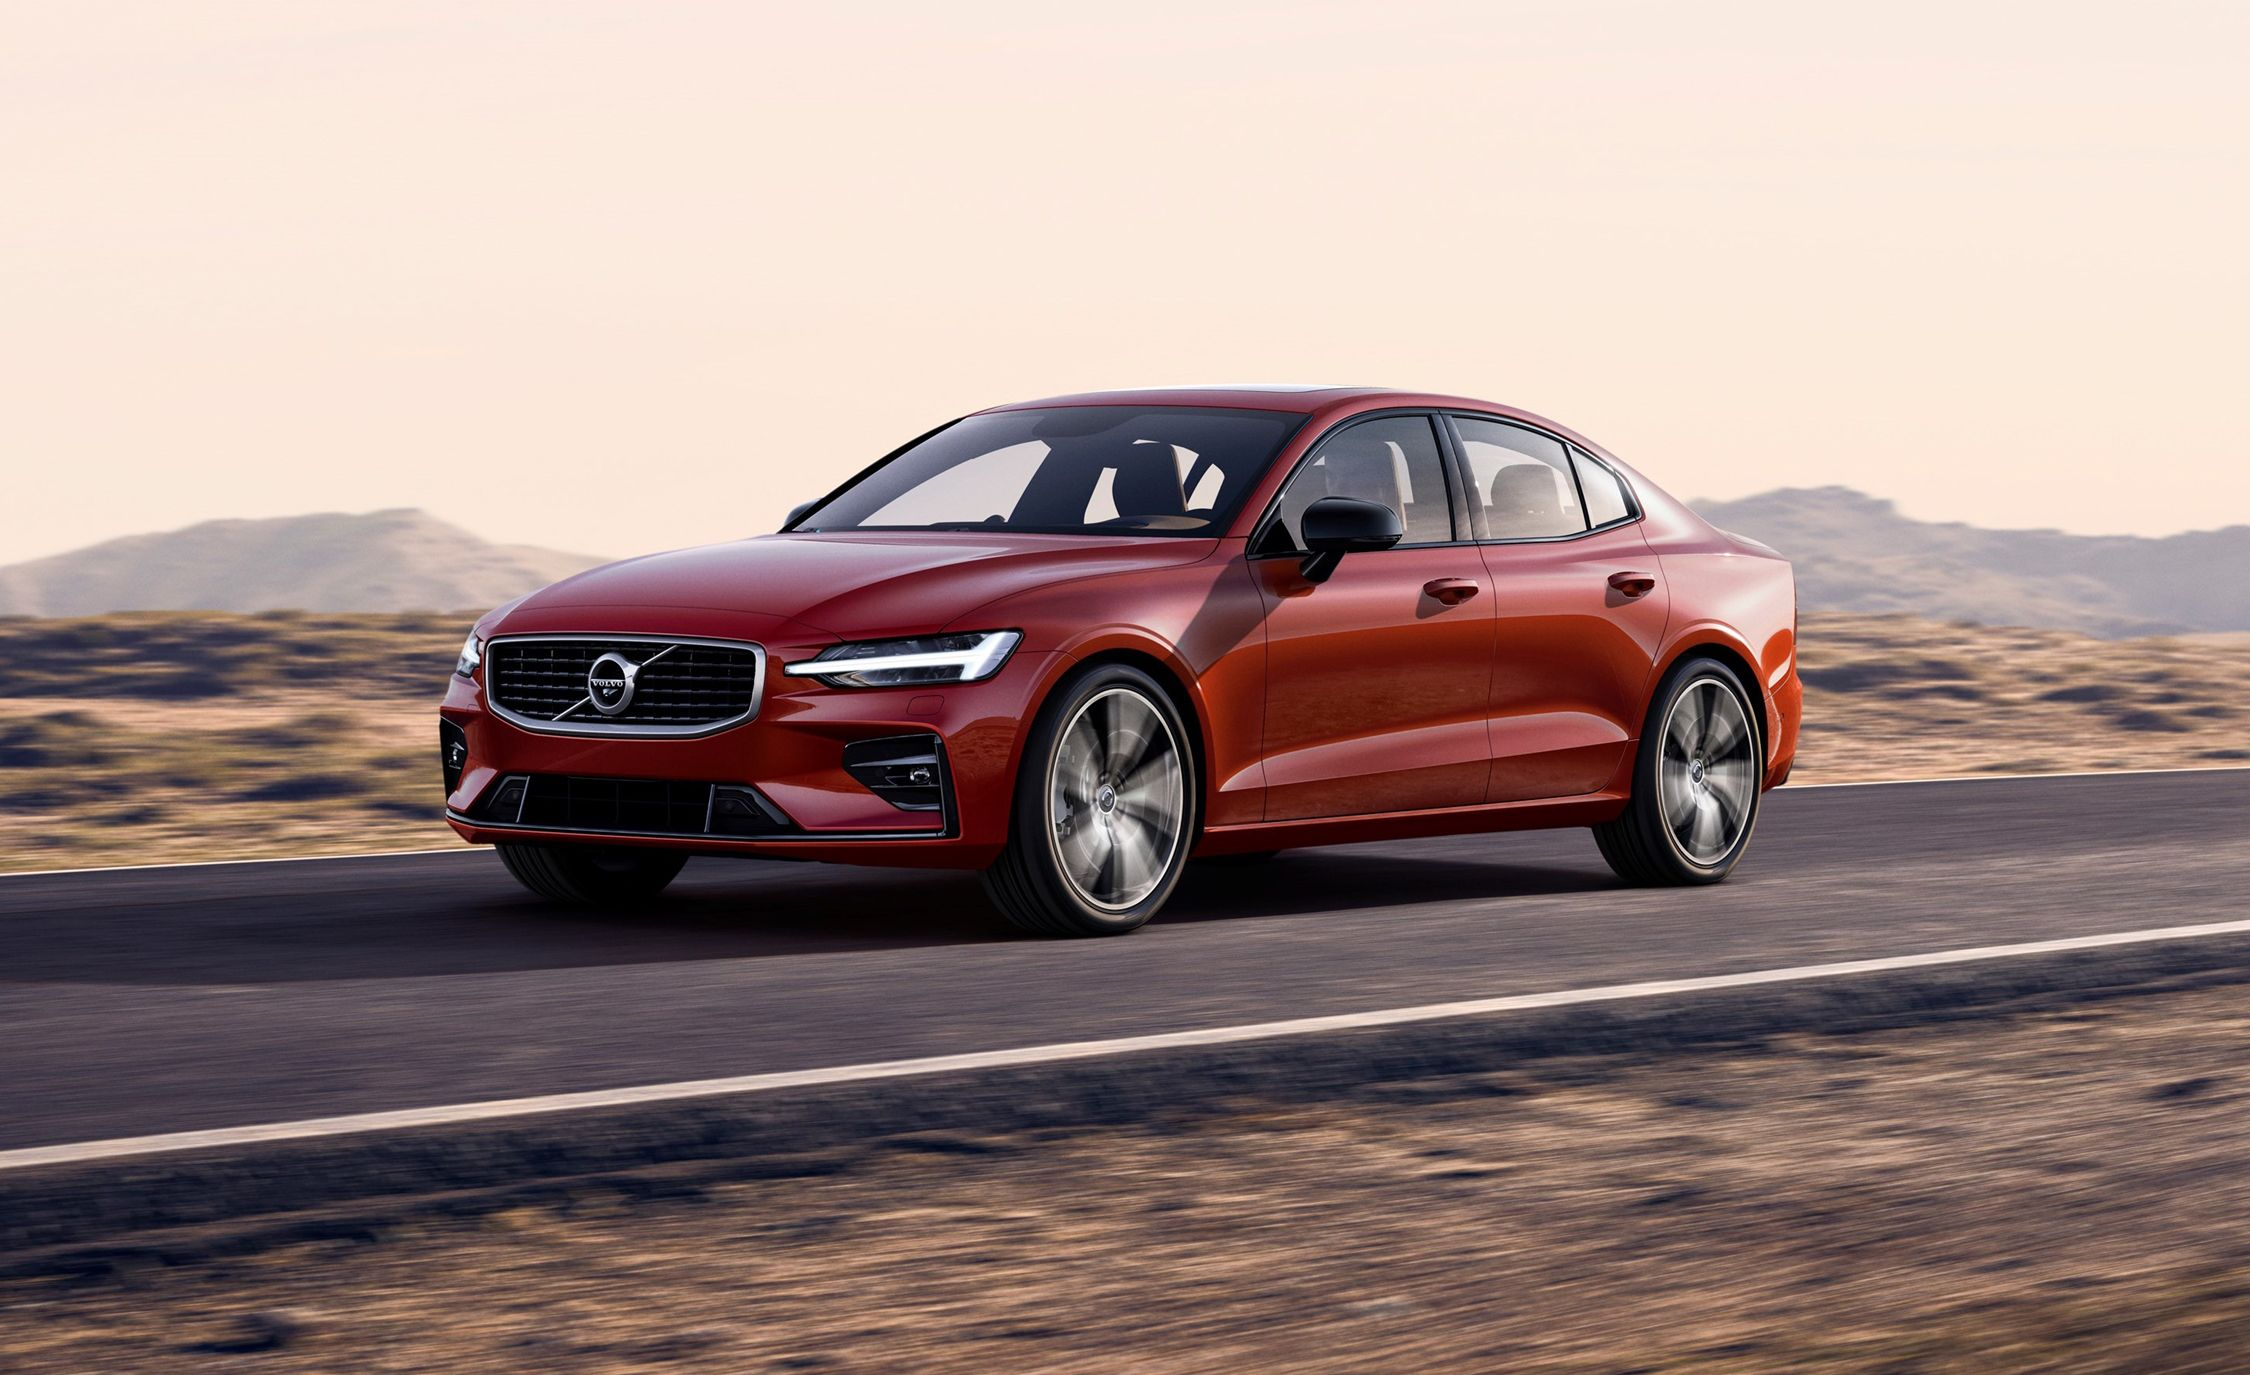 Limousine For Sale >> 2019 Volvo S60 Sedan: The First Made-in-the-U.S.A. Volvo | News | Car and Driver